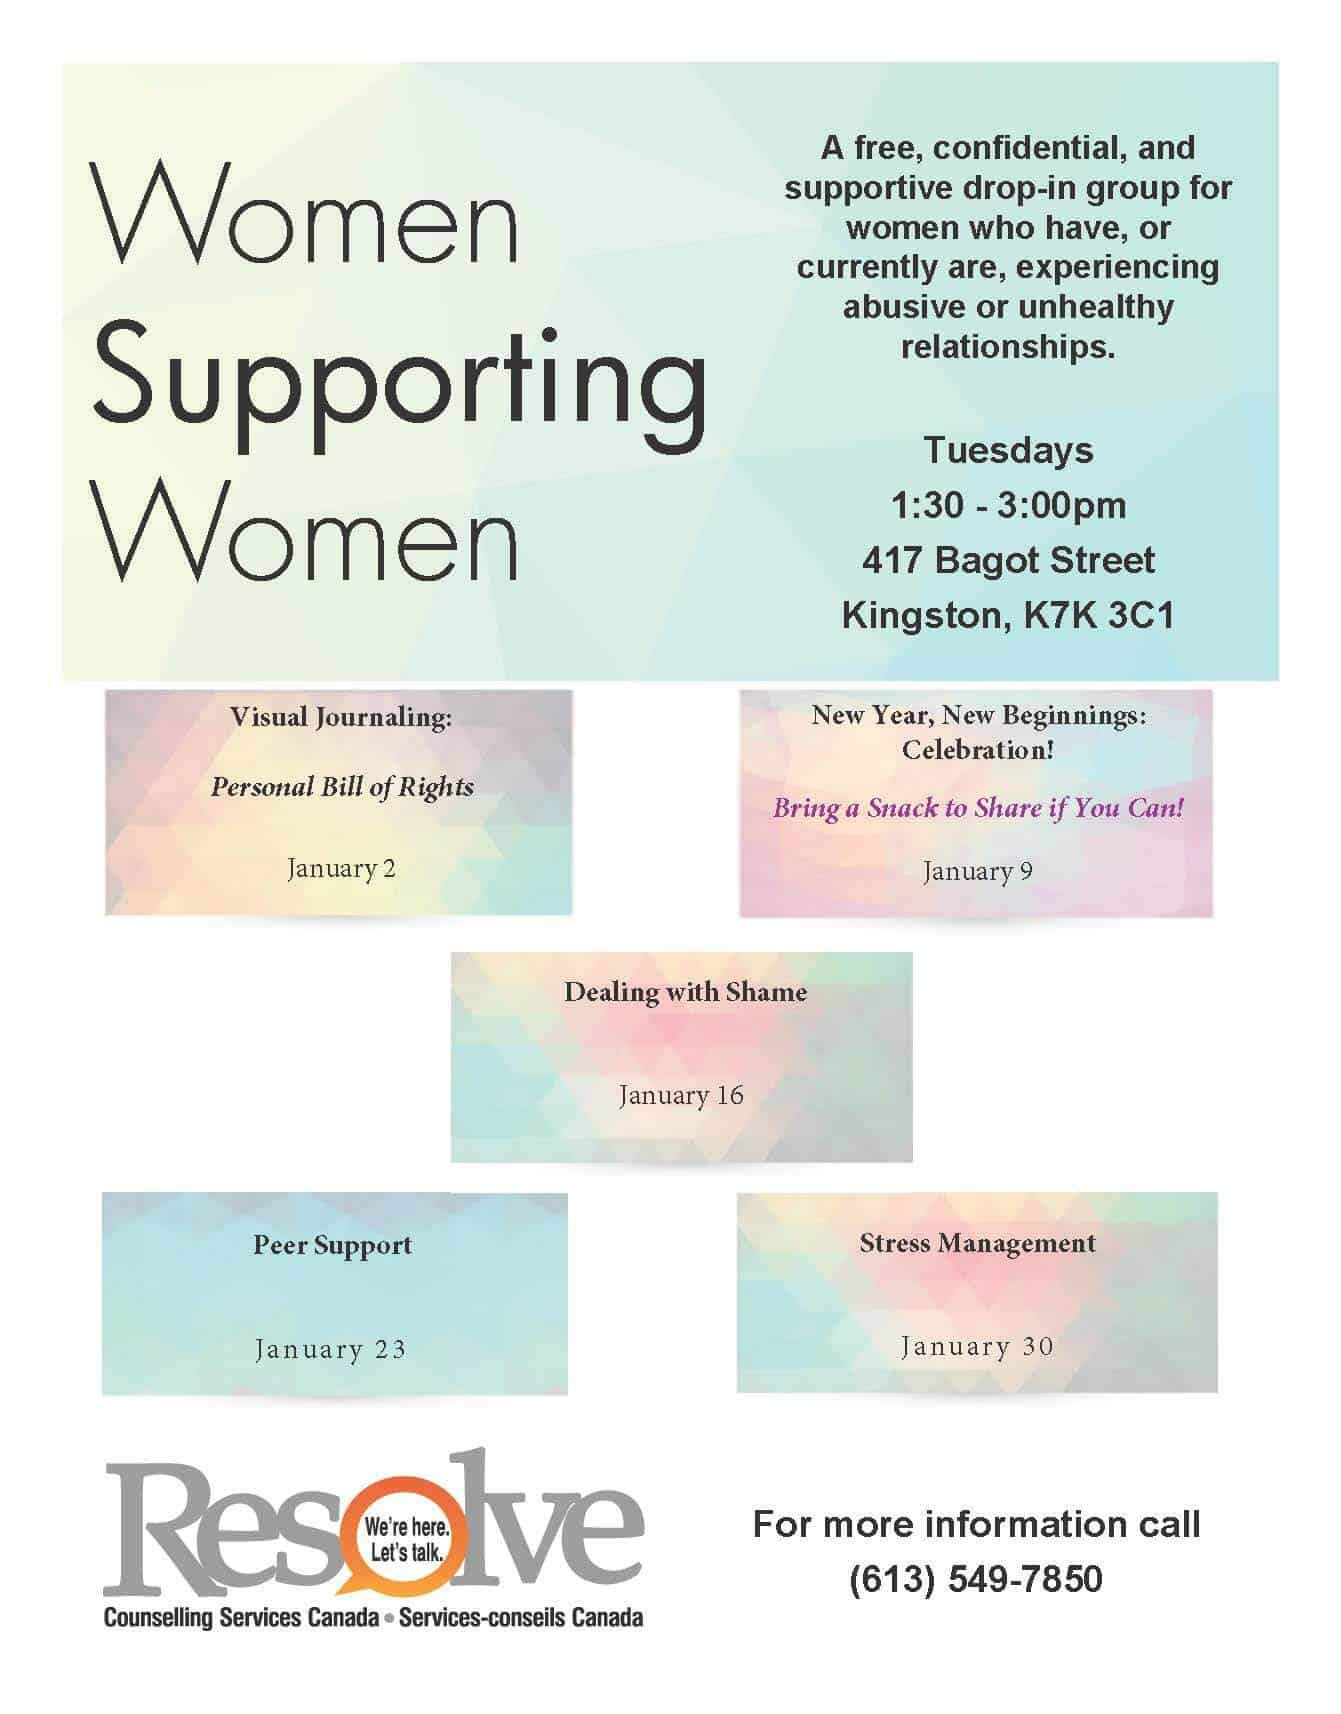 Women Supporting Women Download our current Women Supporting Women monthly schedule -January